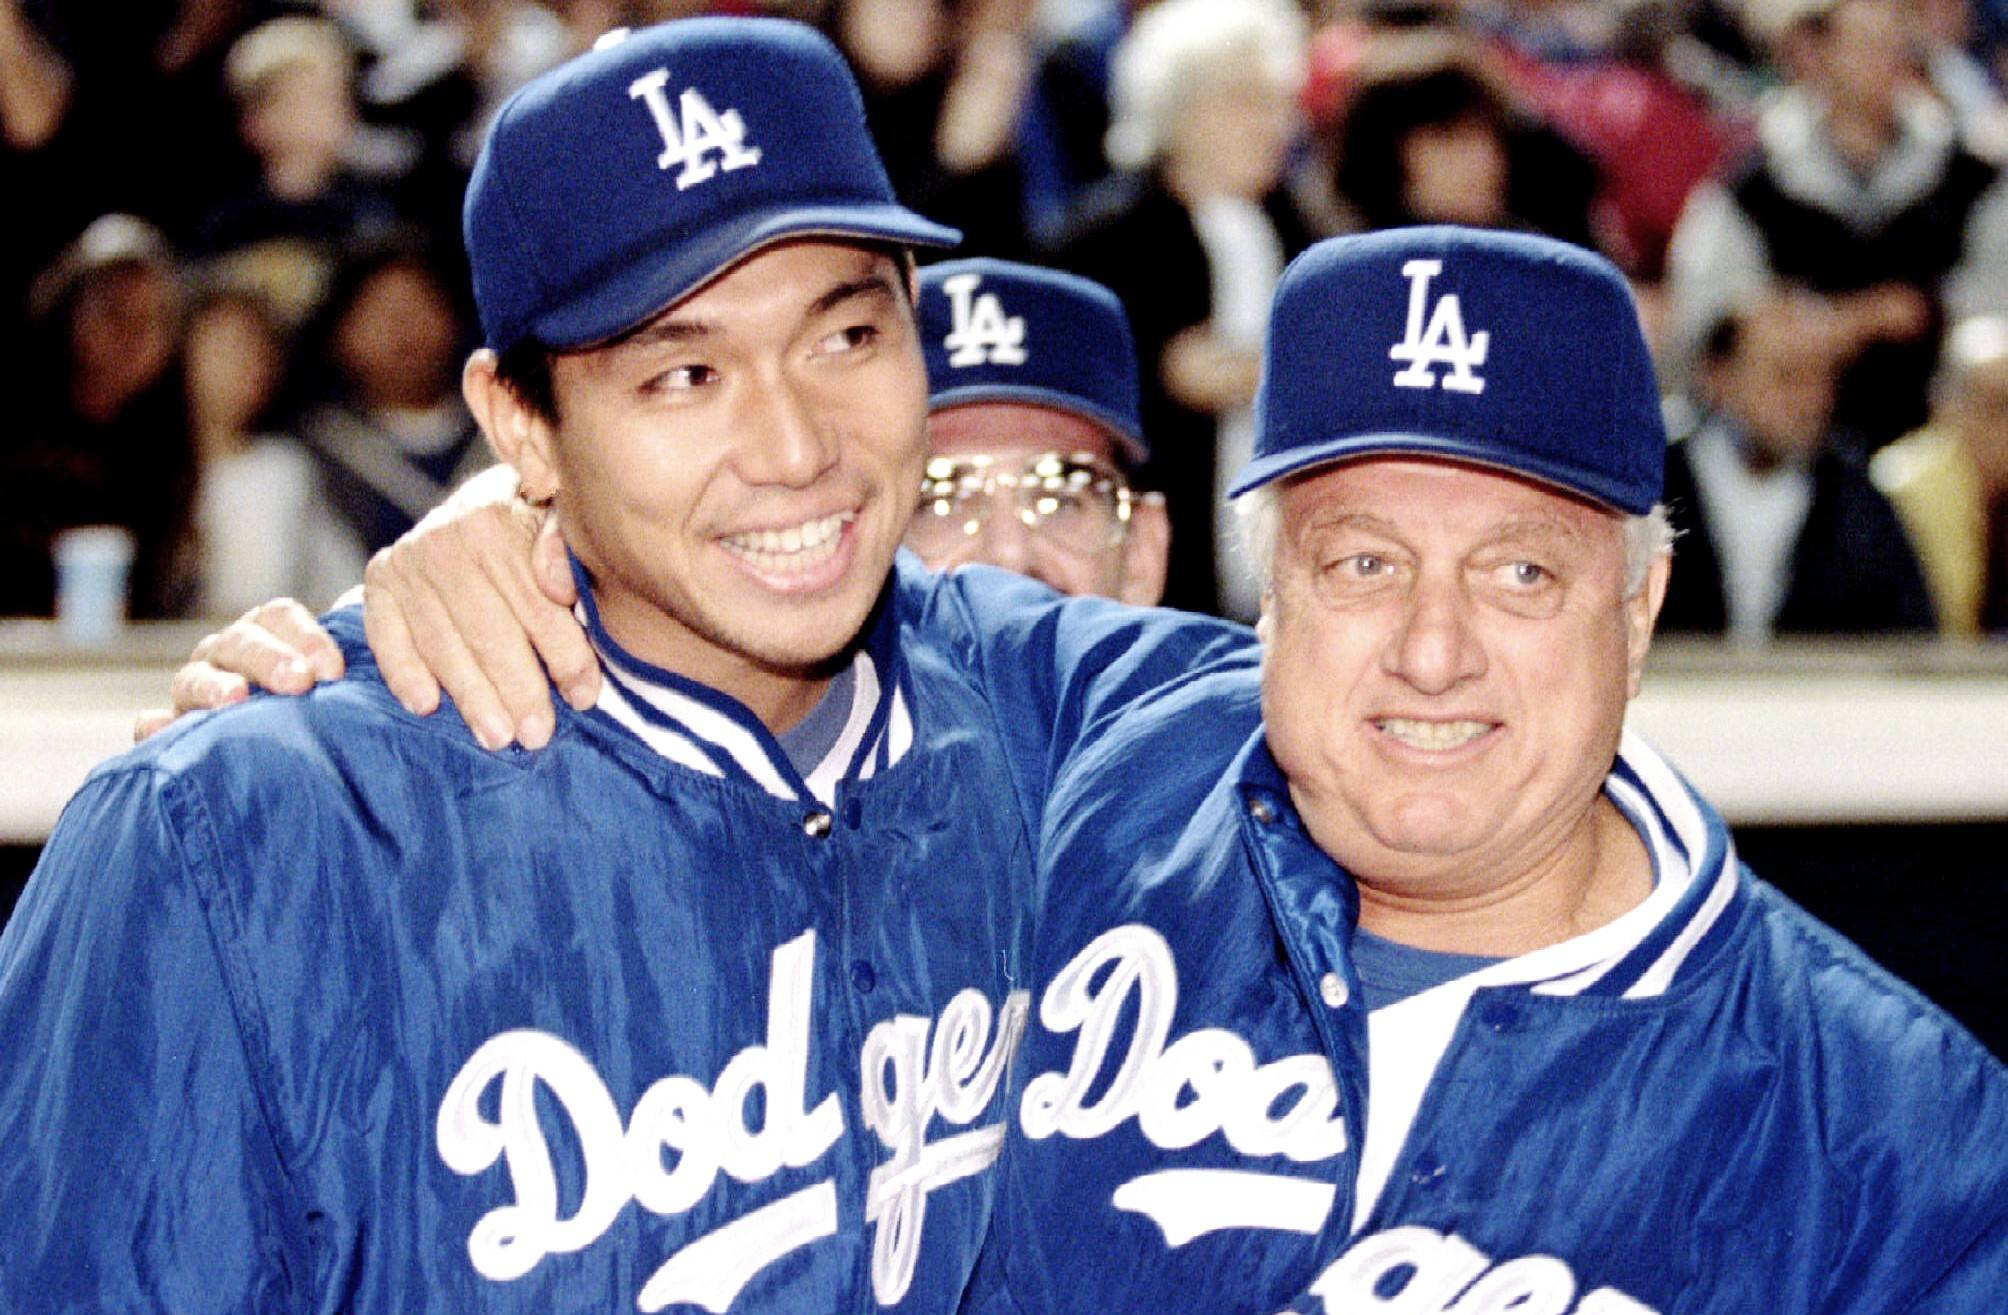 Dodgers manager Tommy Lasorda congratulates pitcher Hideo Nomo following the Japanese hurler's first MLB win in Los Angeles on June 2, 1995. | REUTERS / VIA KYODO